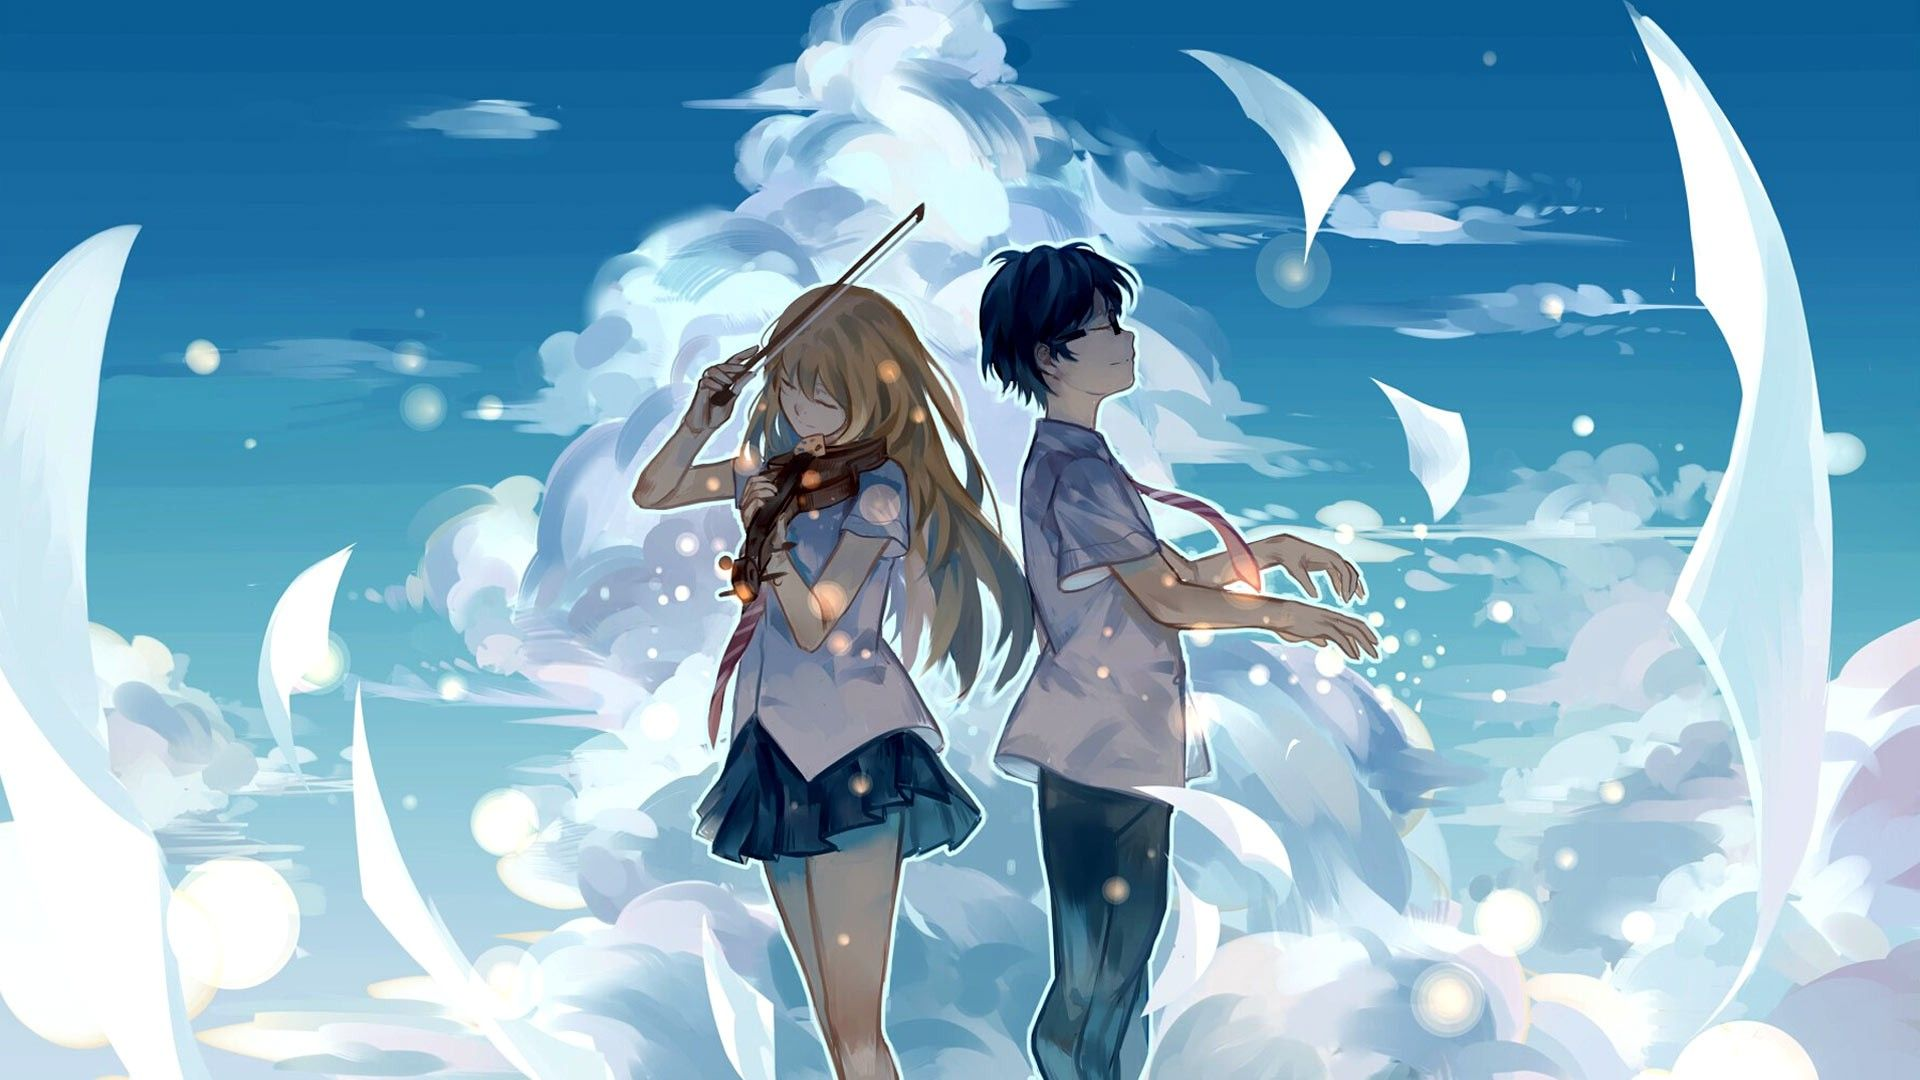 Anime Love Wallpapers Top Free Anime Love Backgrounds